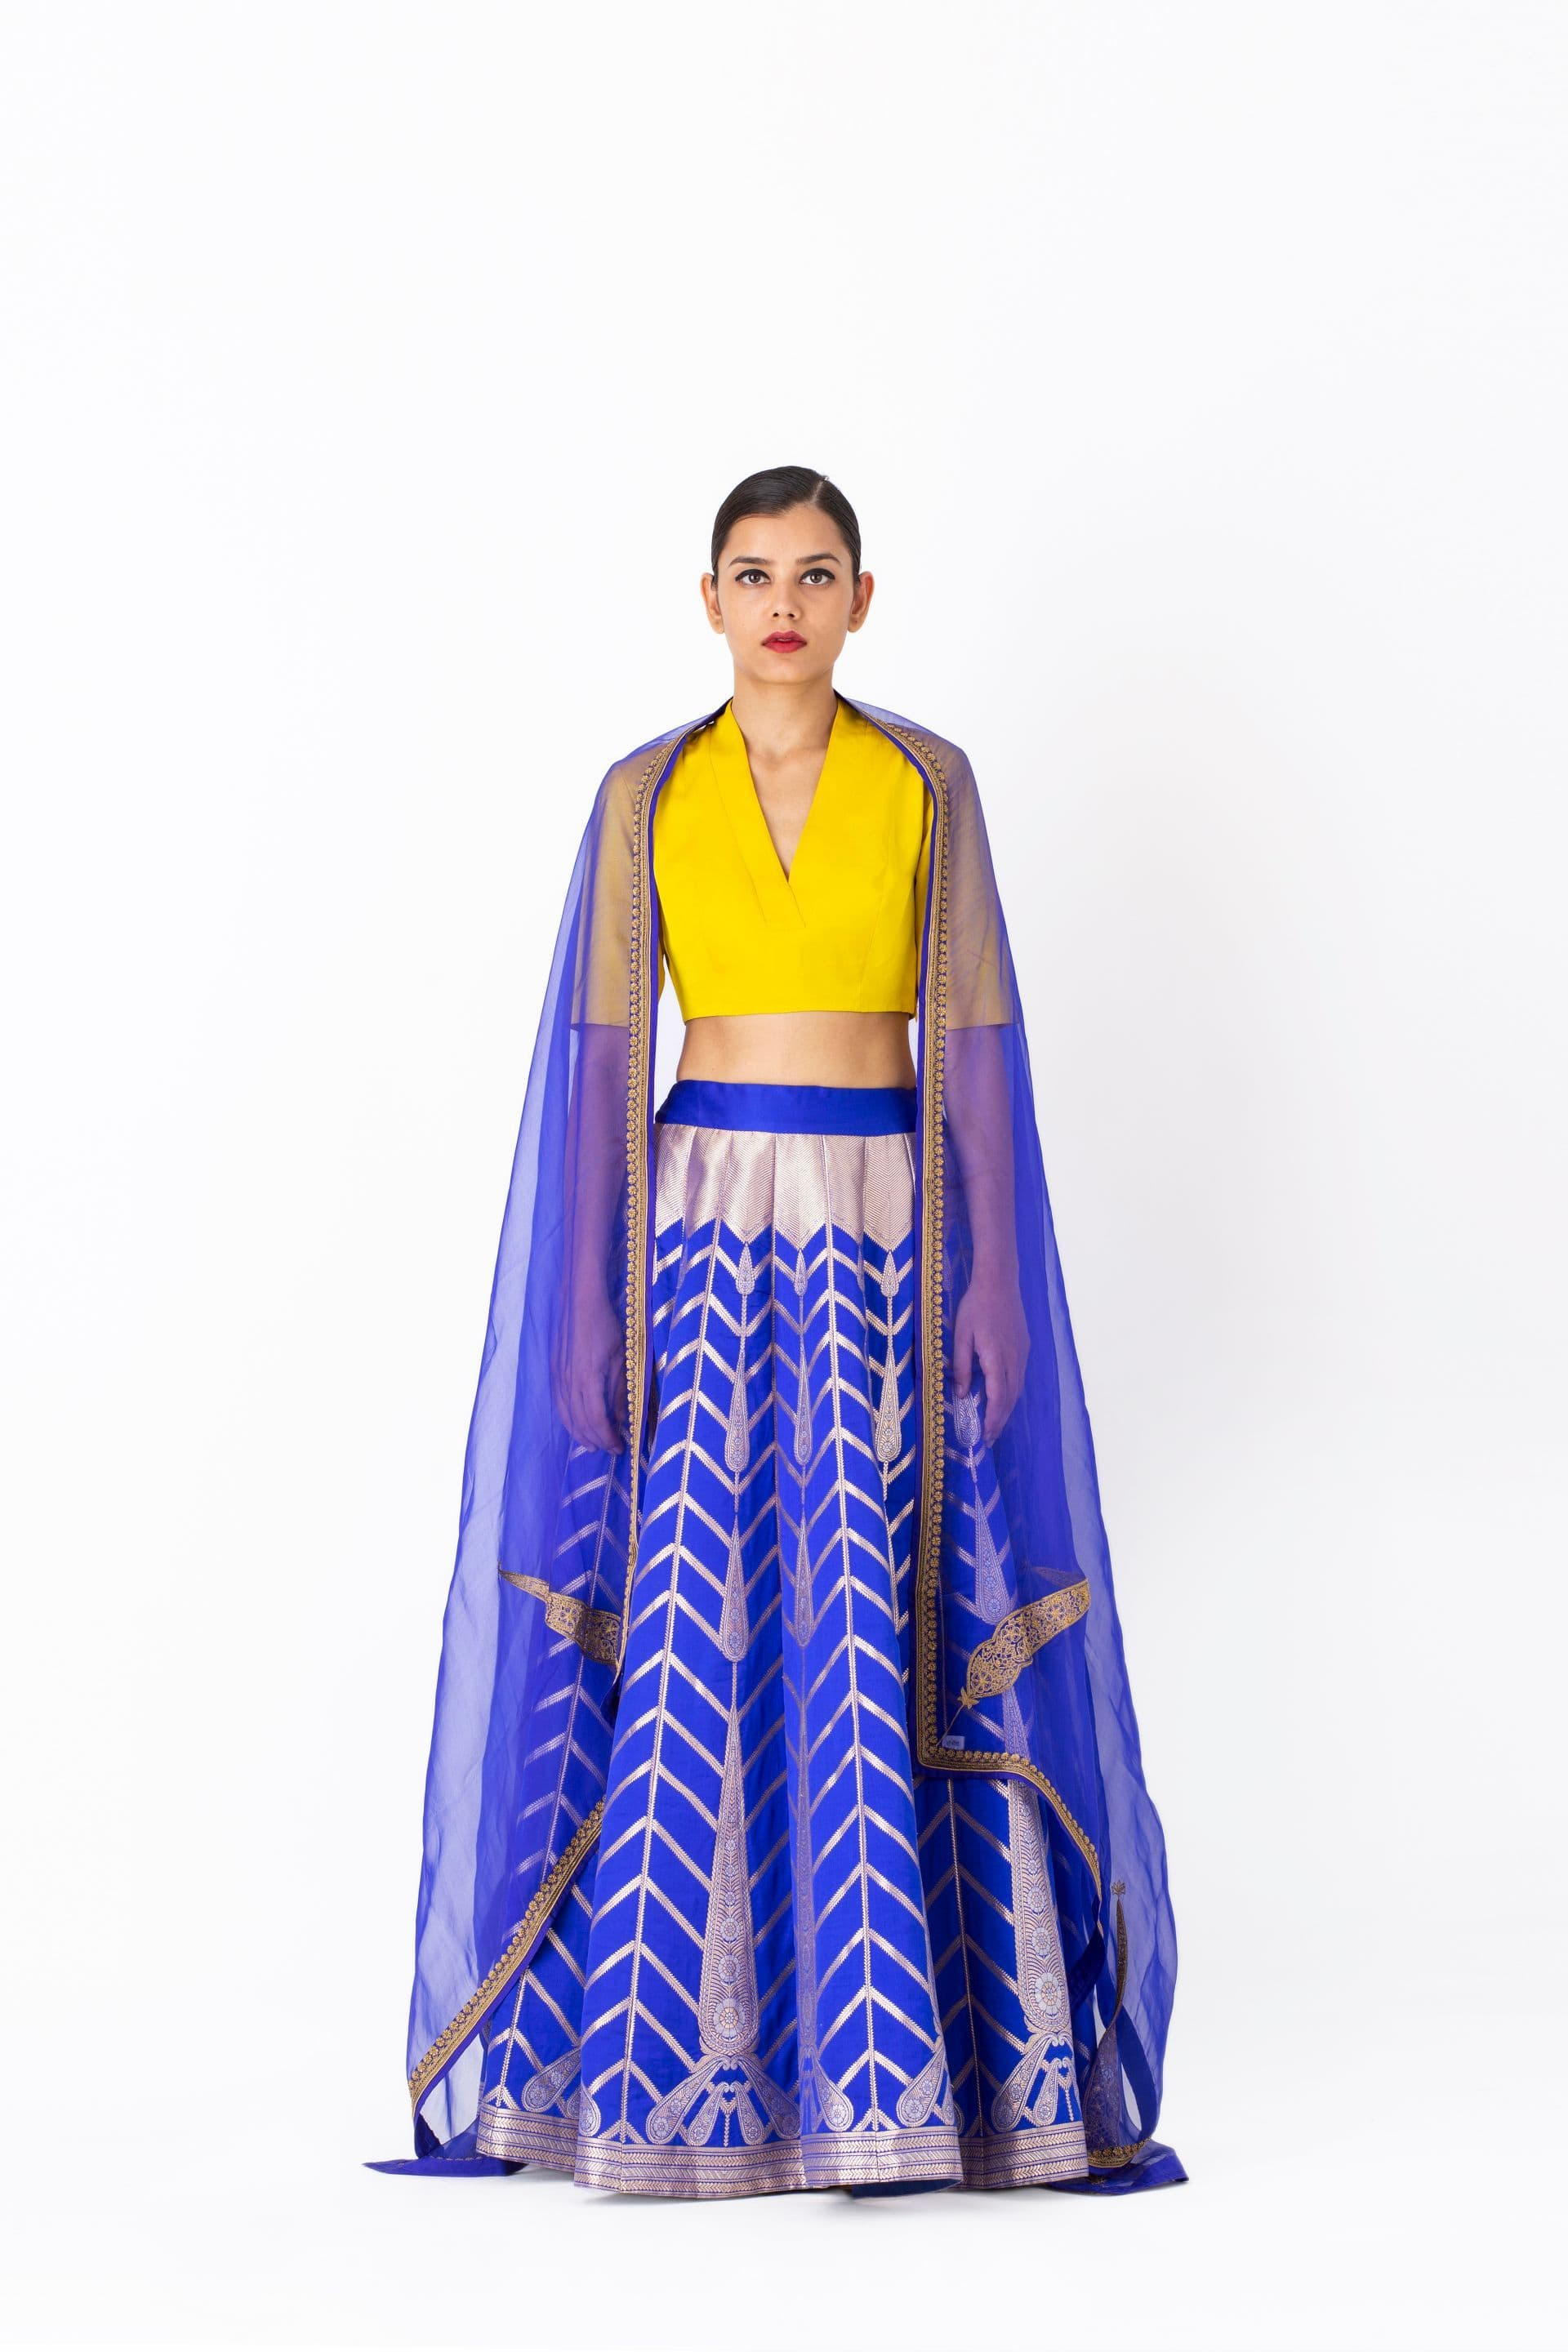 Raw Mango Light Lehengas Mansoor & Pali varanasi silk lehenga set